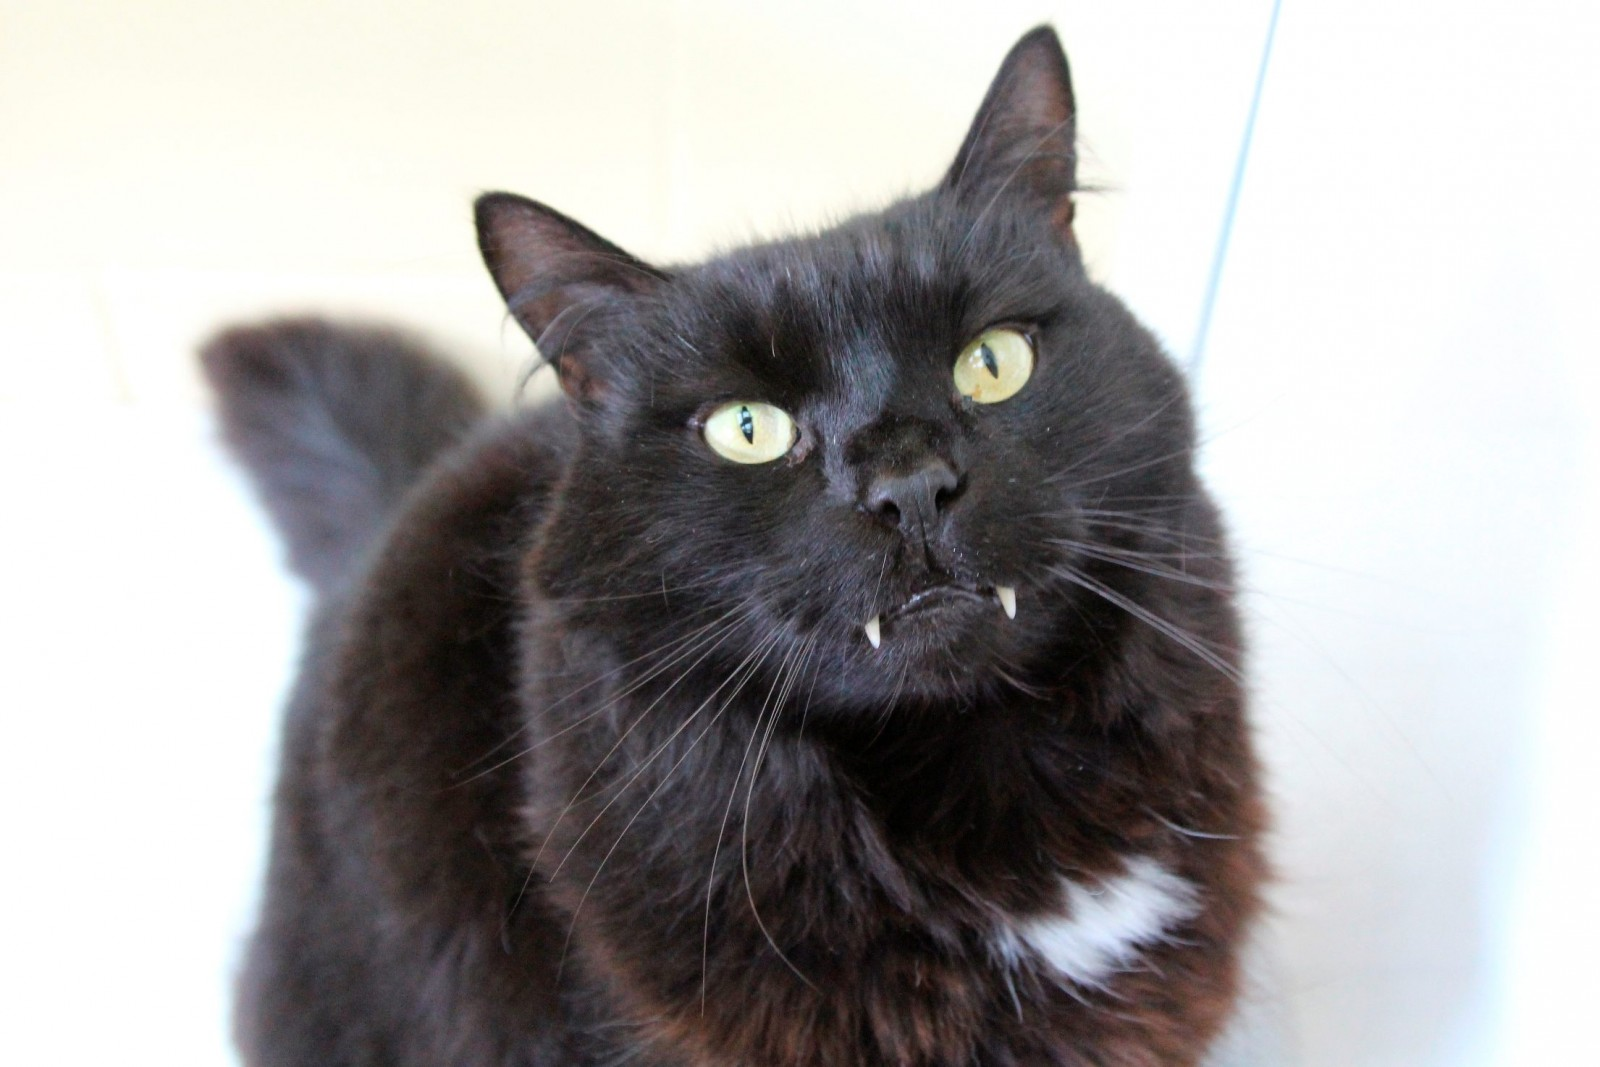 Count Cat-ula finds himself a fang-tastic new home!